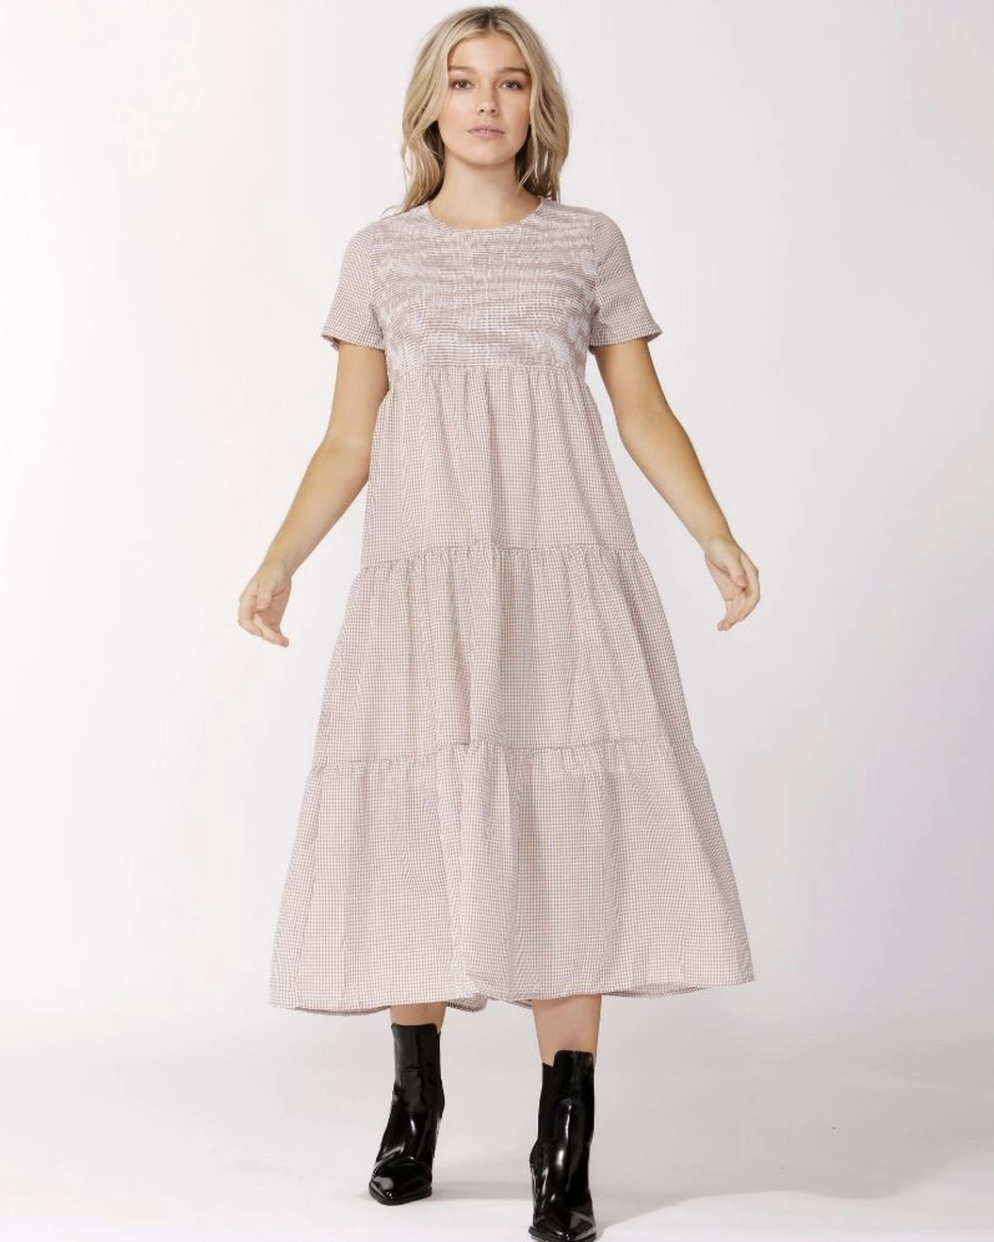 Homestead Gingham Dress